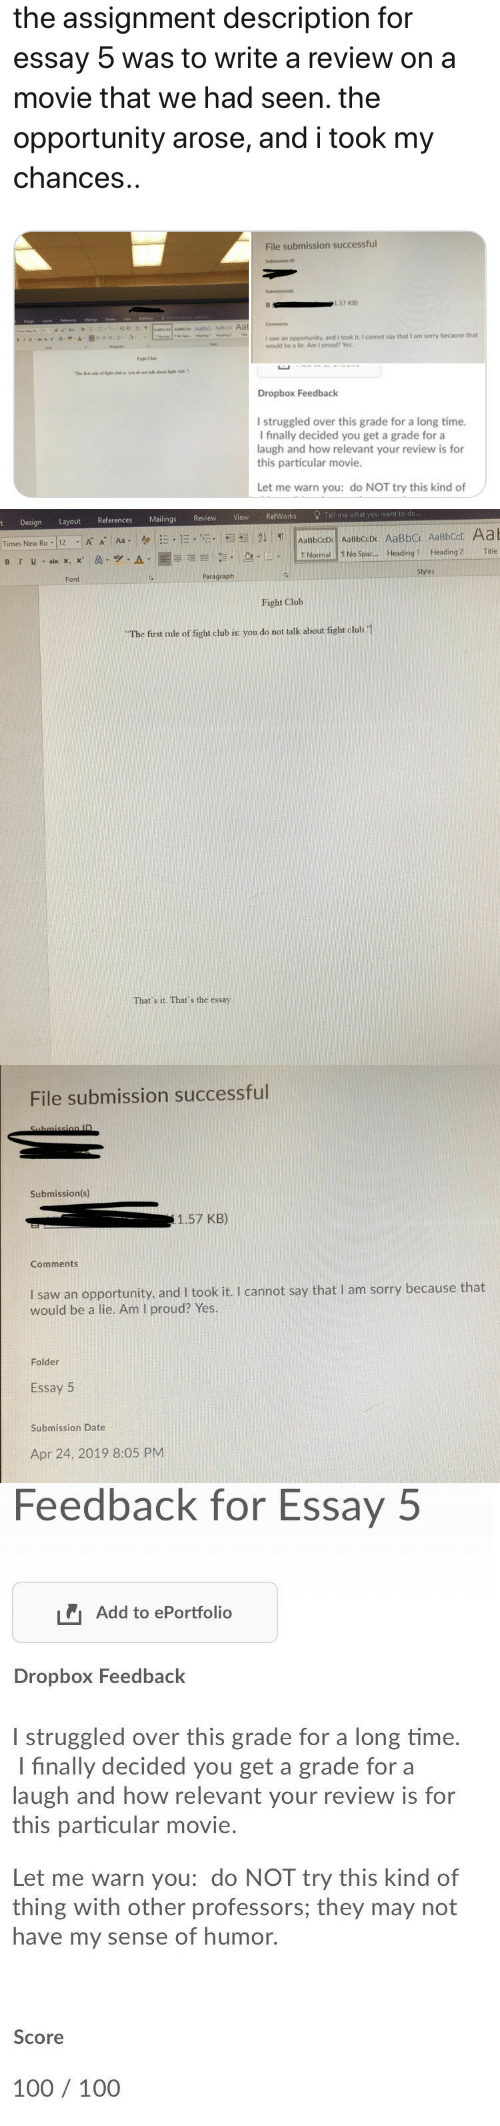 100 100: the assignment description for  essay  was to write a review on a  movie that we had seen. the  opportunity arose, and i took my  chances  File submission successful  Submissions  1.57 KB)  Comments  I saw an opportunity, and I took it. I cannot say that I am sorry because that  would be a lie. Am I proud? Yes.  Fand  Faght Club  The fist rale of ight club in: you do not talk about figh chb 1  Dropbox Feedback  I struggled over this grade for a long time.  I finally decided you get a grade for a  laugh and how relevant your review is for  this particular movie.  Let me warn you: do NOT try this kind of   erences Mailings Review View RefWorks Tell me what you want to do  t Design Layout Refe     TNormal!!NoSpac  A-1圜喜毛引 .le! . el-  Headingl. Heading2  Title  Styles  Paragraph  Font  Fight Club  The first rule of fight club is: you do not talk about fight chub.1  That's it. That's the essay   File submission successful  Submission(s)  1.57 KB)  Comments  I saw an opportunity, and I took it. I cannot say that I am sorry because that  would be a lie. Am I proud? Yes.  Folder  Essay 5  Submission Date  Apr 24, 2019 8:05 PM   Feedback for Essay  5  Add to ePortfolio  Dropbox Feedback  l struggled over this grade for a long time.  I finally decided you get a grade for a  laugh and how relevant your review is for  this particular movie.  Let me warn you: do NOT try this kind of  thing with other professors; they may not  have my sense of humor.  Score  100 100